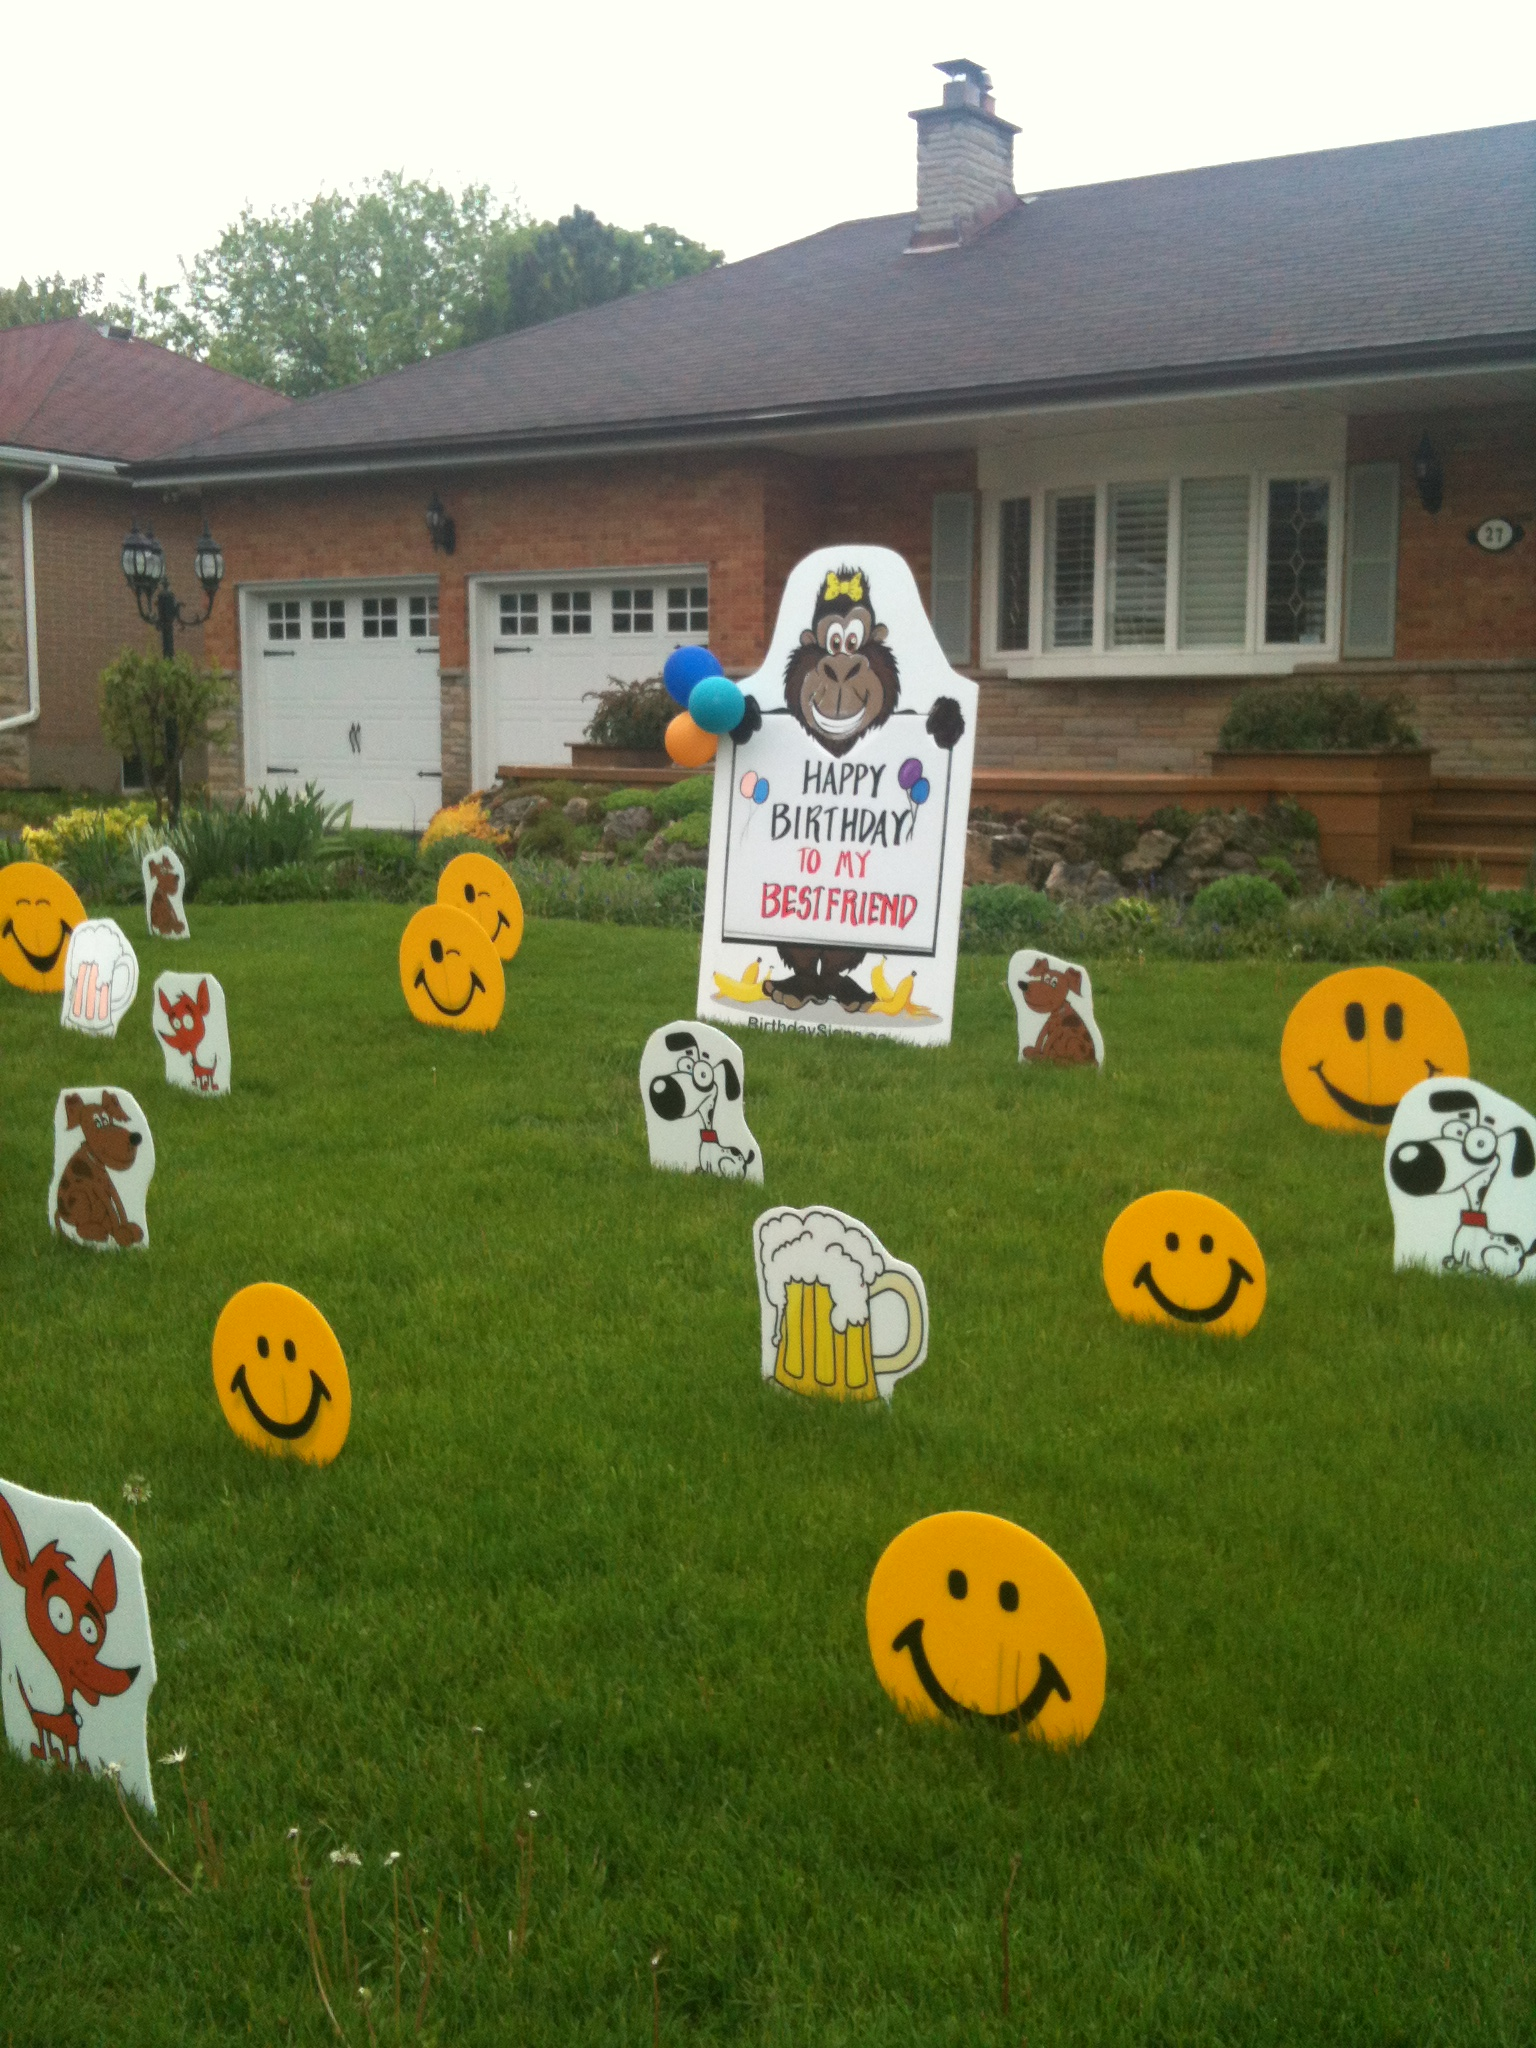 Gorilla Sign With Smiley Faces And Dogs BorthdaySignsca